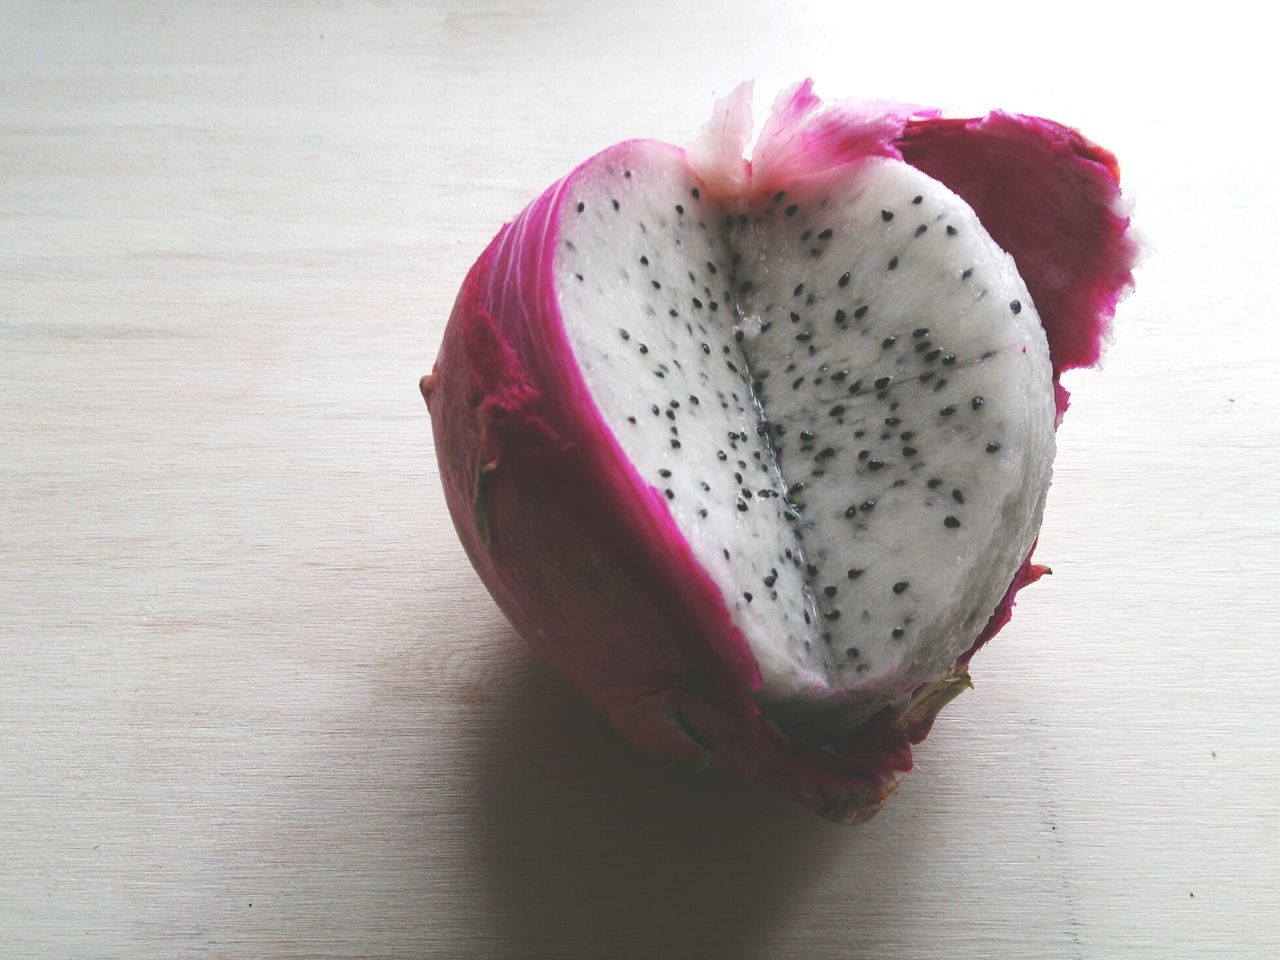 Dragonfruit Sony Xperia Zr Mobile Photography Freshness Pink Color No People Pitaya Close-up Healthy Eating Fruit Fruits Food Delicious Sweet Healthy Food Natural Light Natural Soft Fruit Photography Food Photography Art Is Everywhere